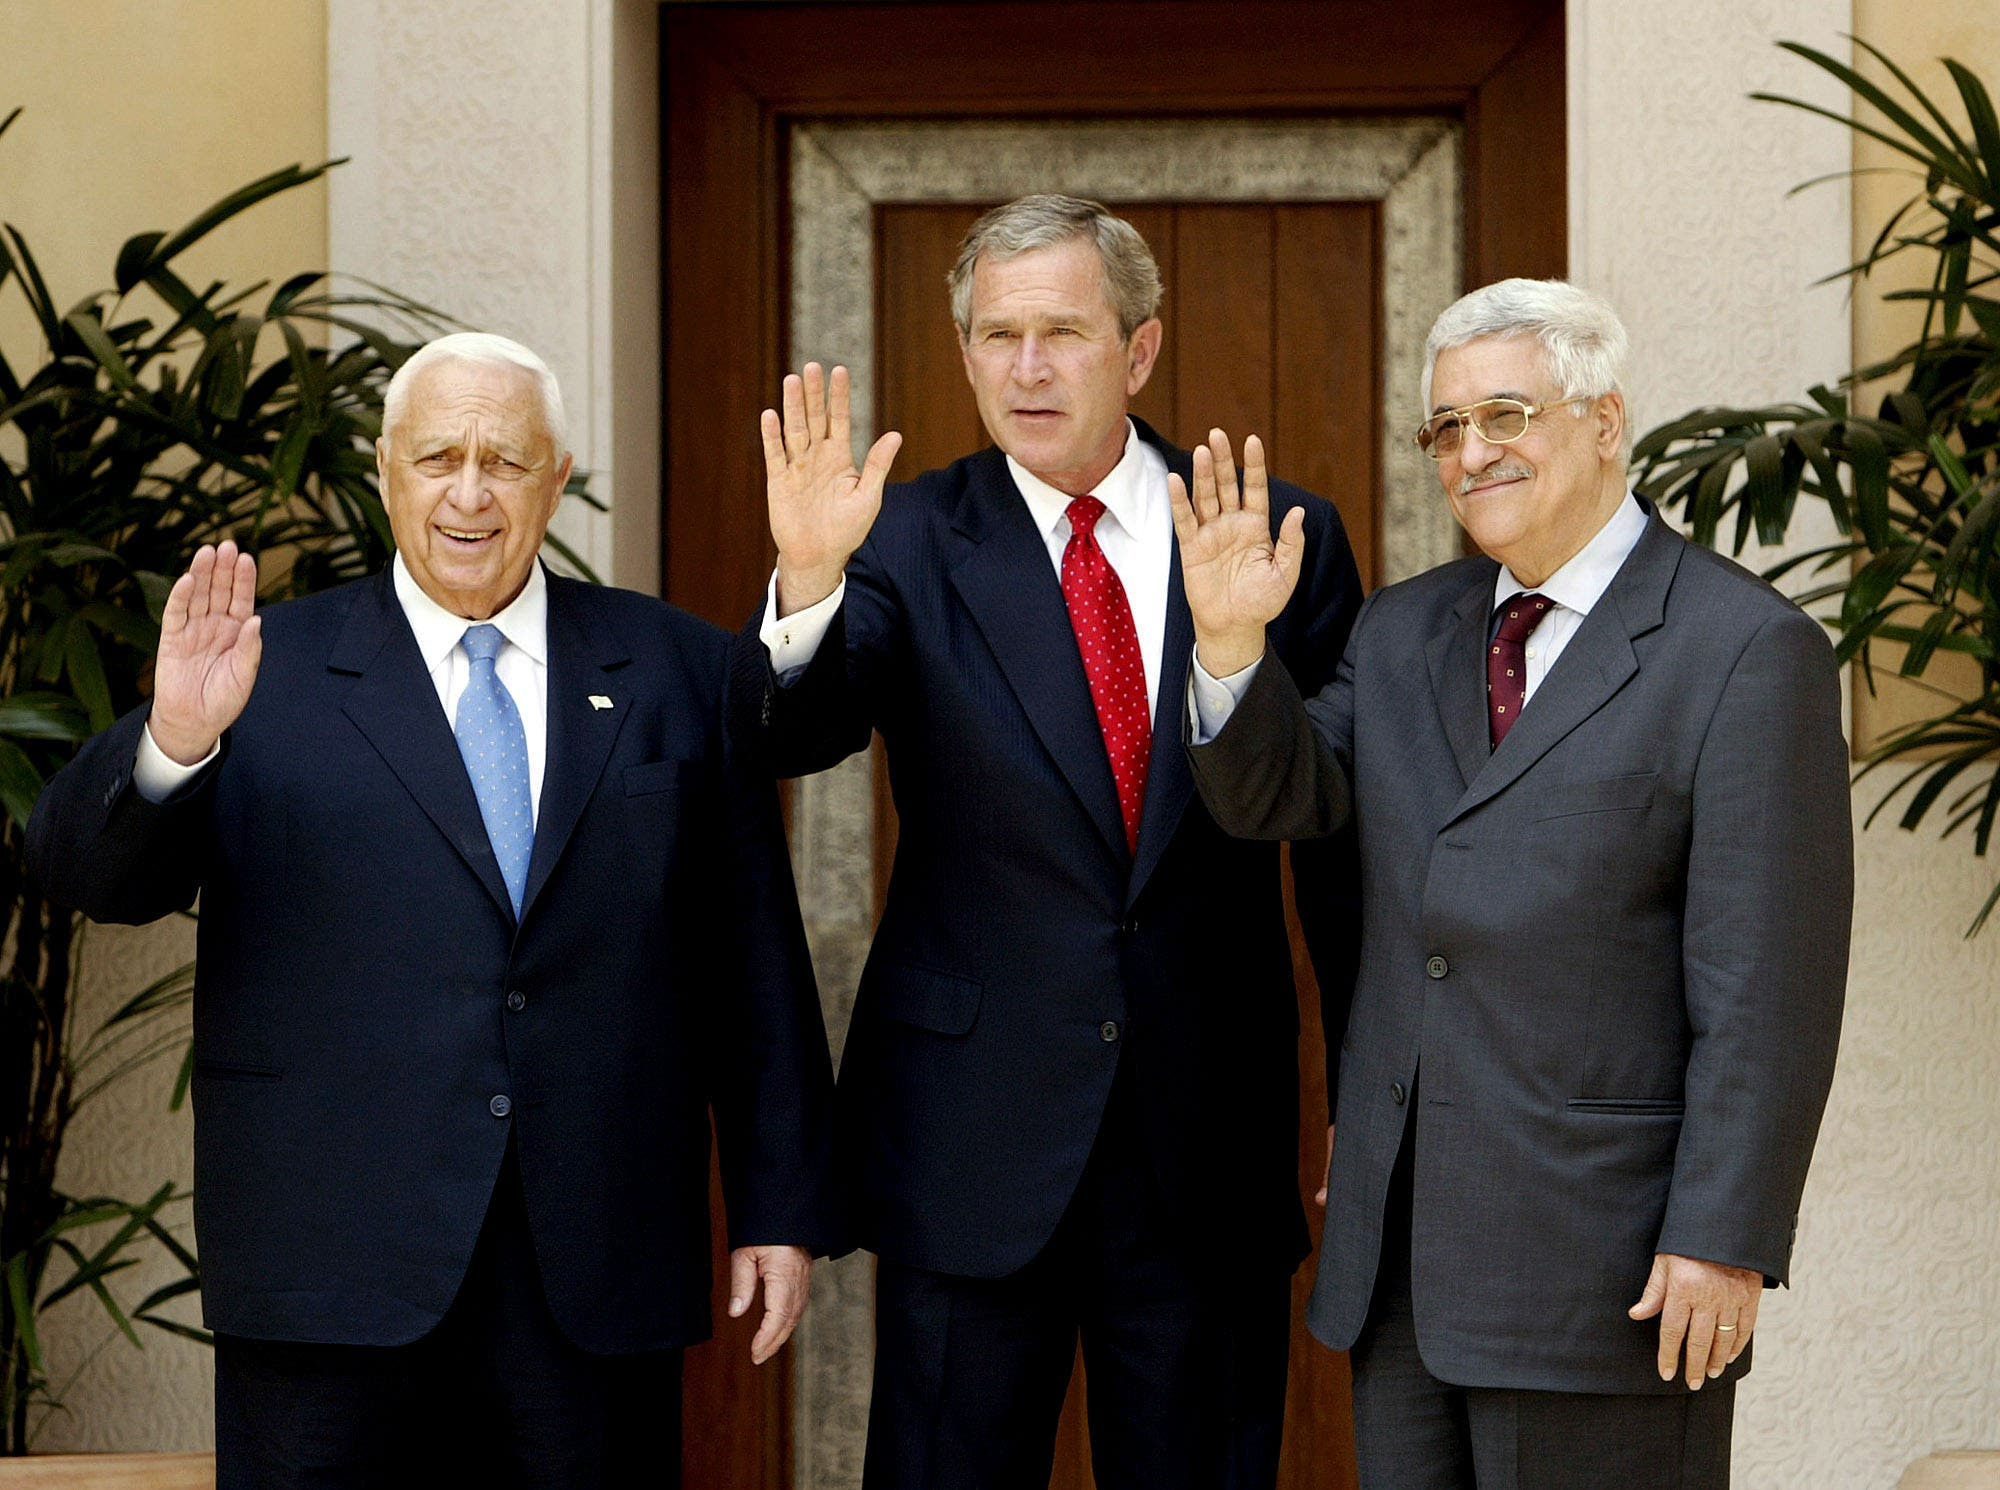 US President George W. Bush, center, with Israel's Prime Minister Ariel Sharon, left, and Palestinian Prime Minister Mahmoud Abbas, right at Beit al Bahar Palace on June 4, 2003. (AP)